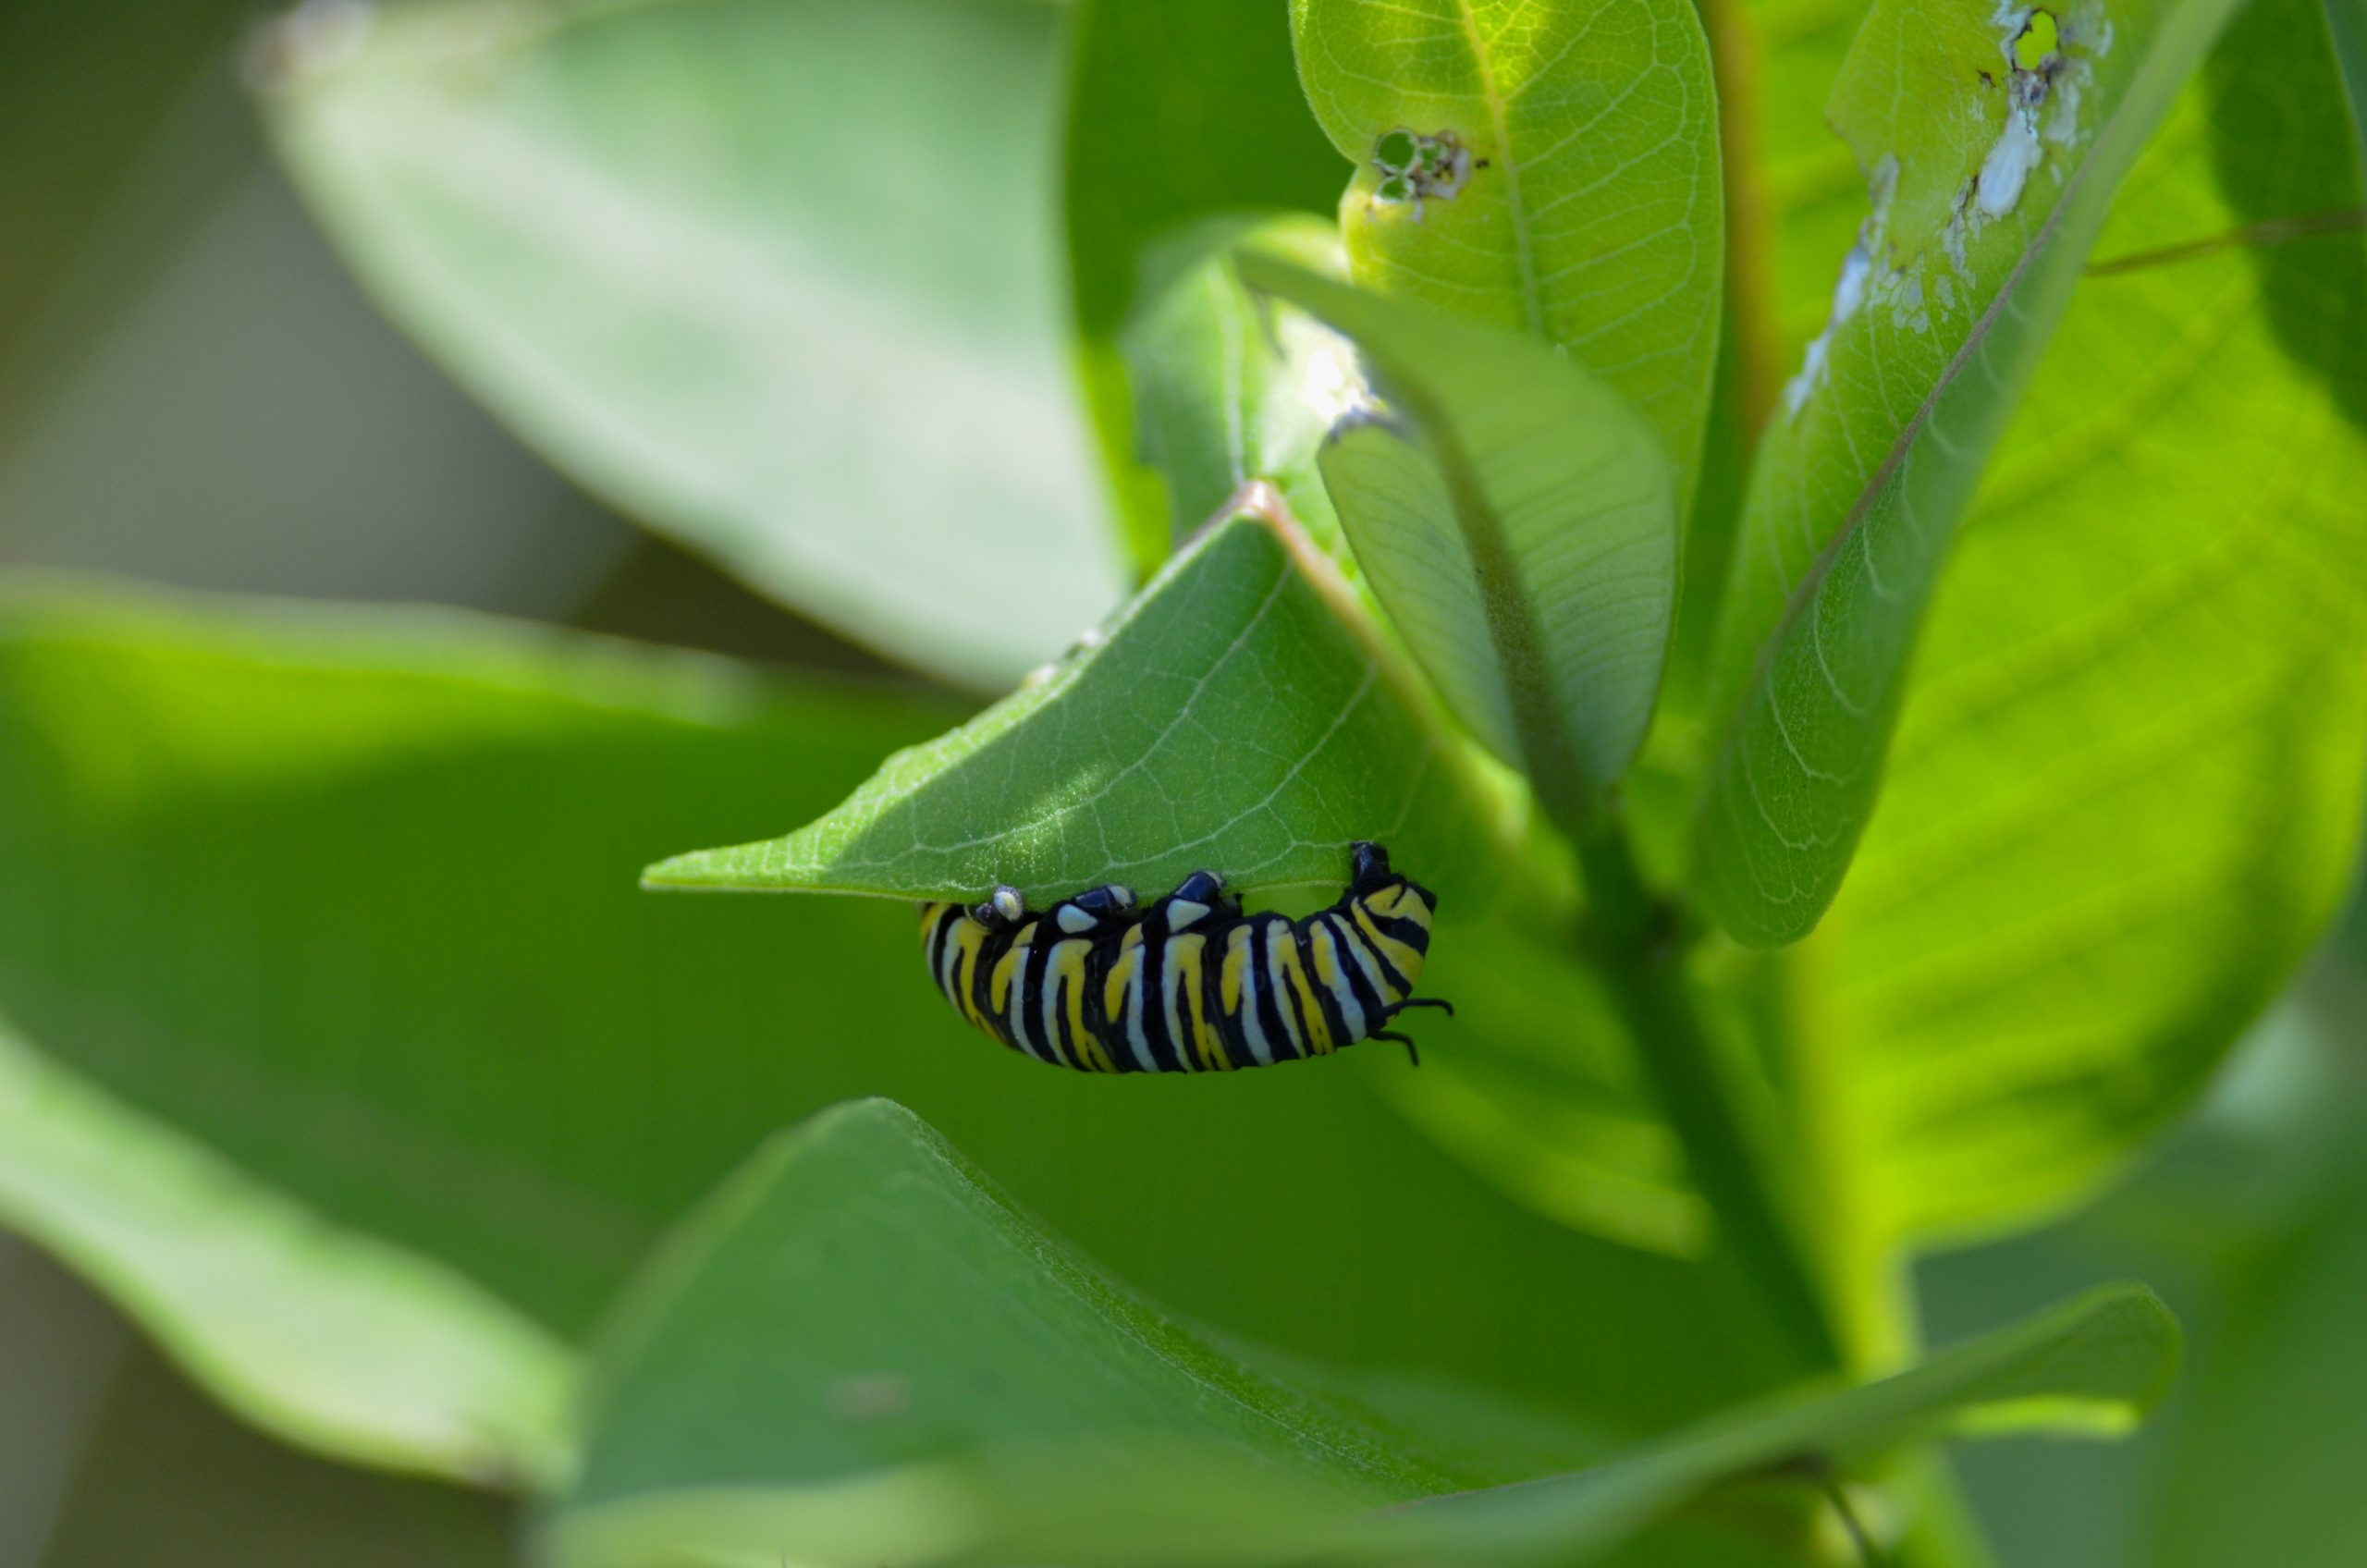 Anyone can pitch in to help nurture Michigan's monarch butterfly population